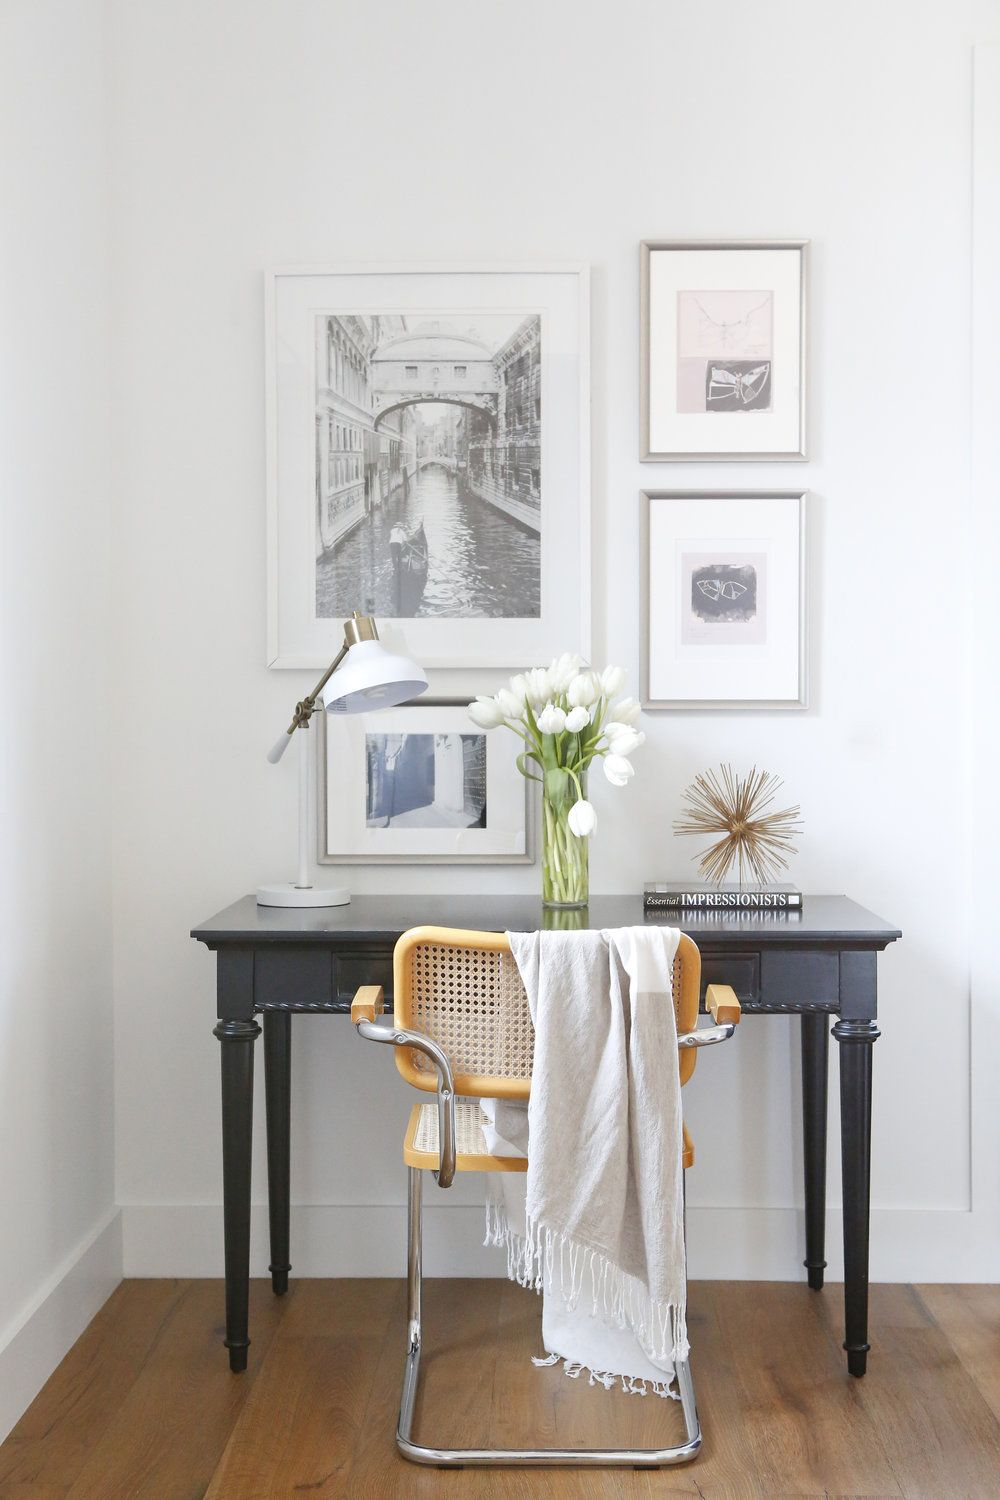 Desk & Chair Pairings Under $500 - roomfortuesday.com